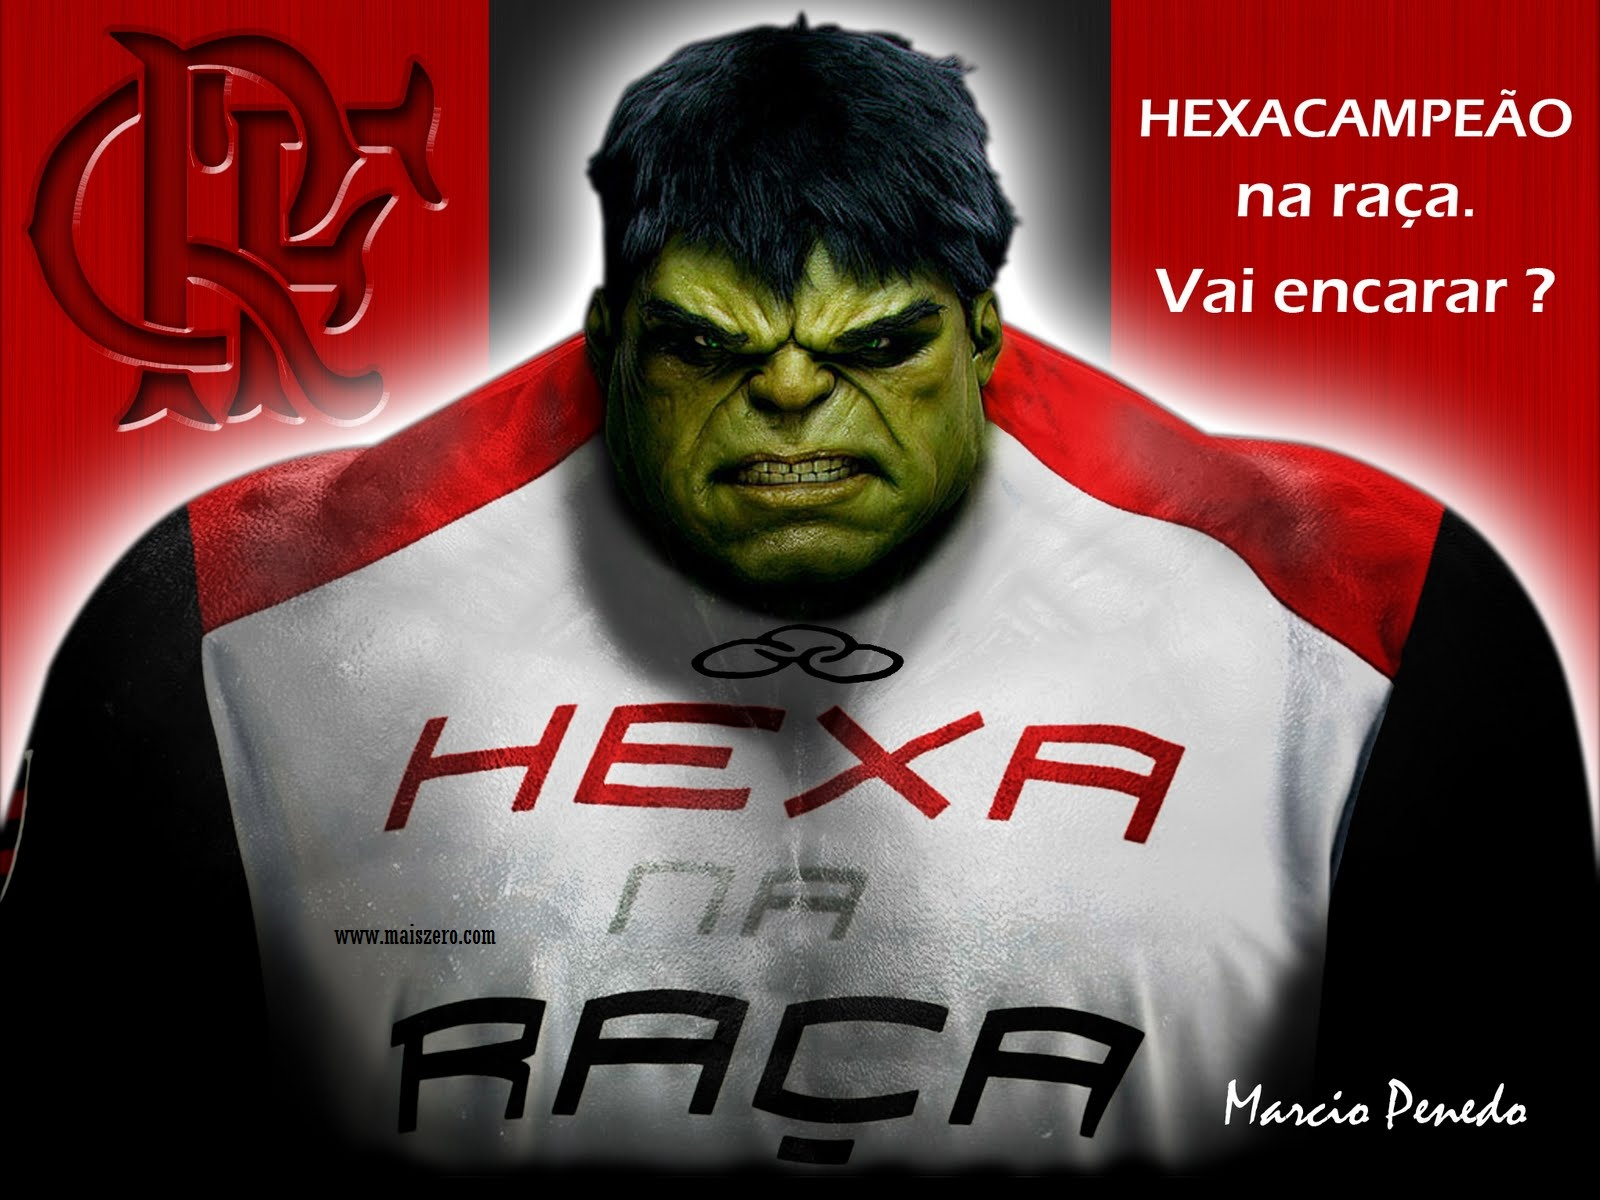 trololo blogg: Wallpaper Flamengo